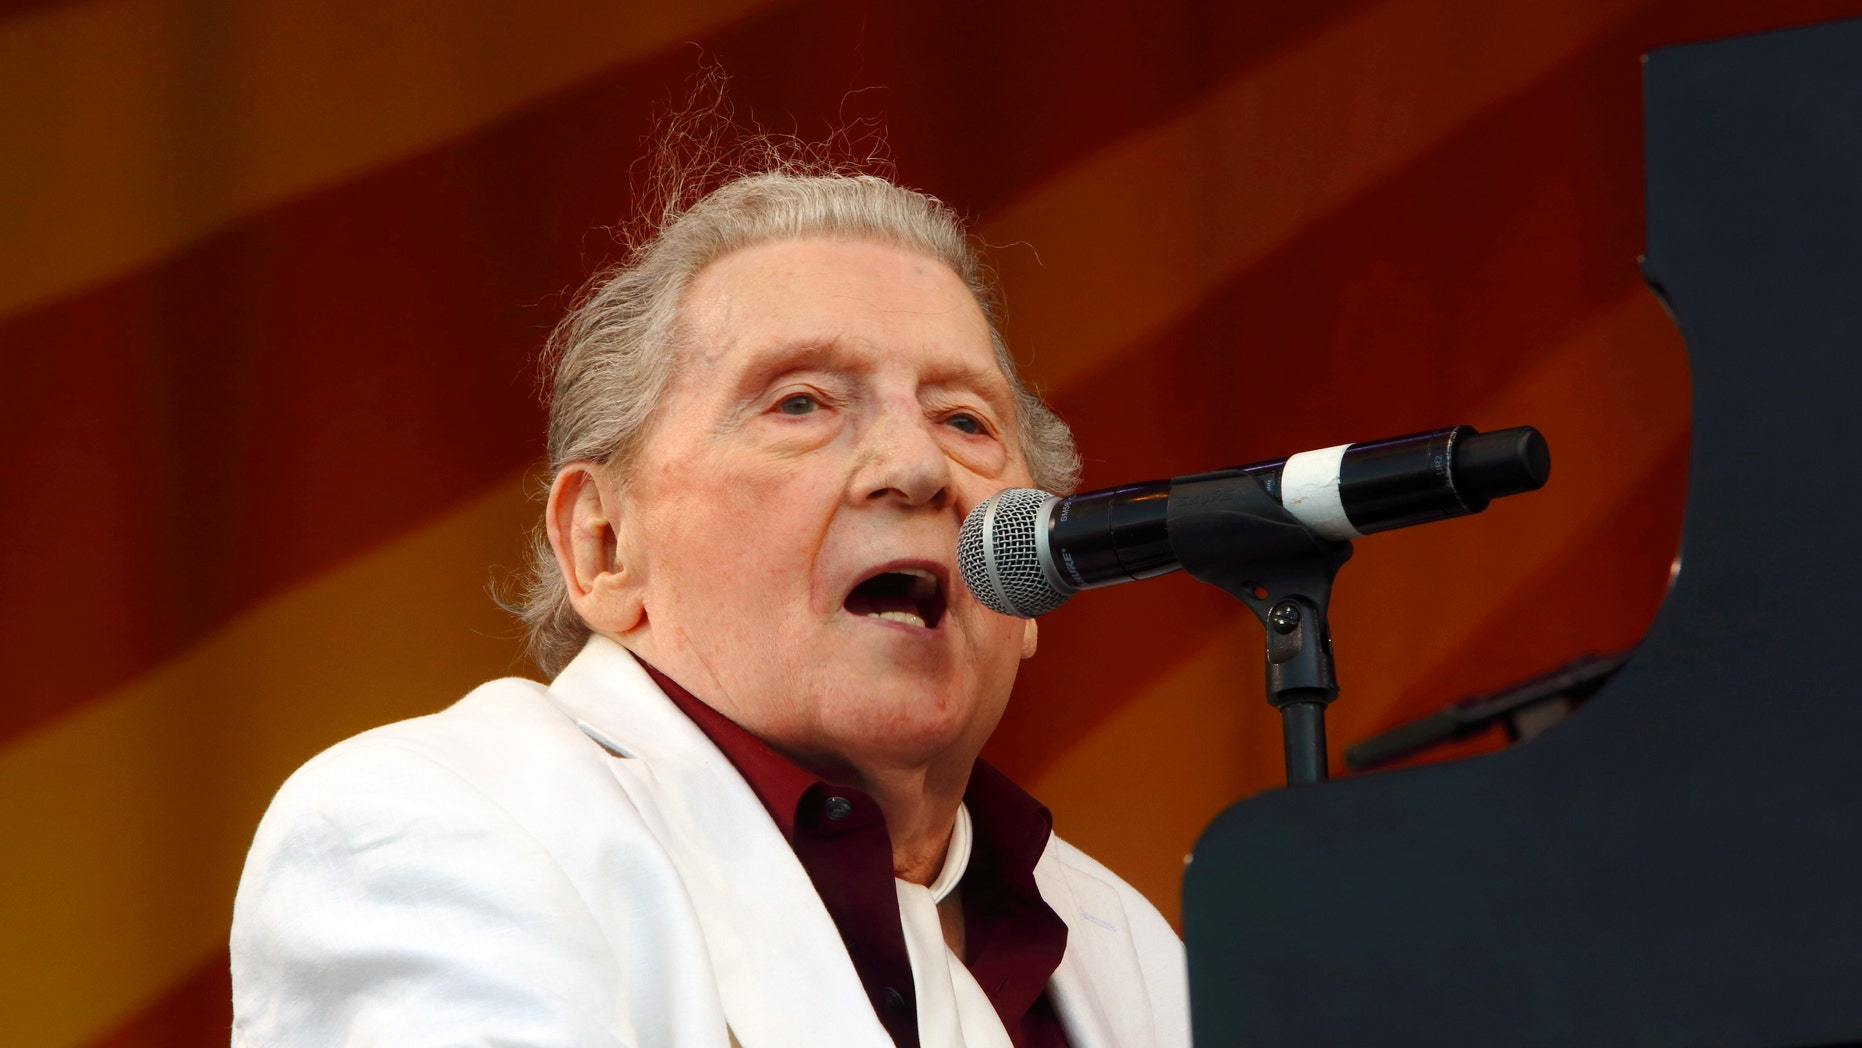 Rock 'n' roll legend Jerry Lee Lewis is recovering after a minor stroke. He's expected to make a full recovery, according to a statement from the musician's rep.